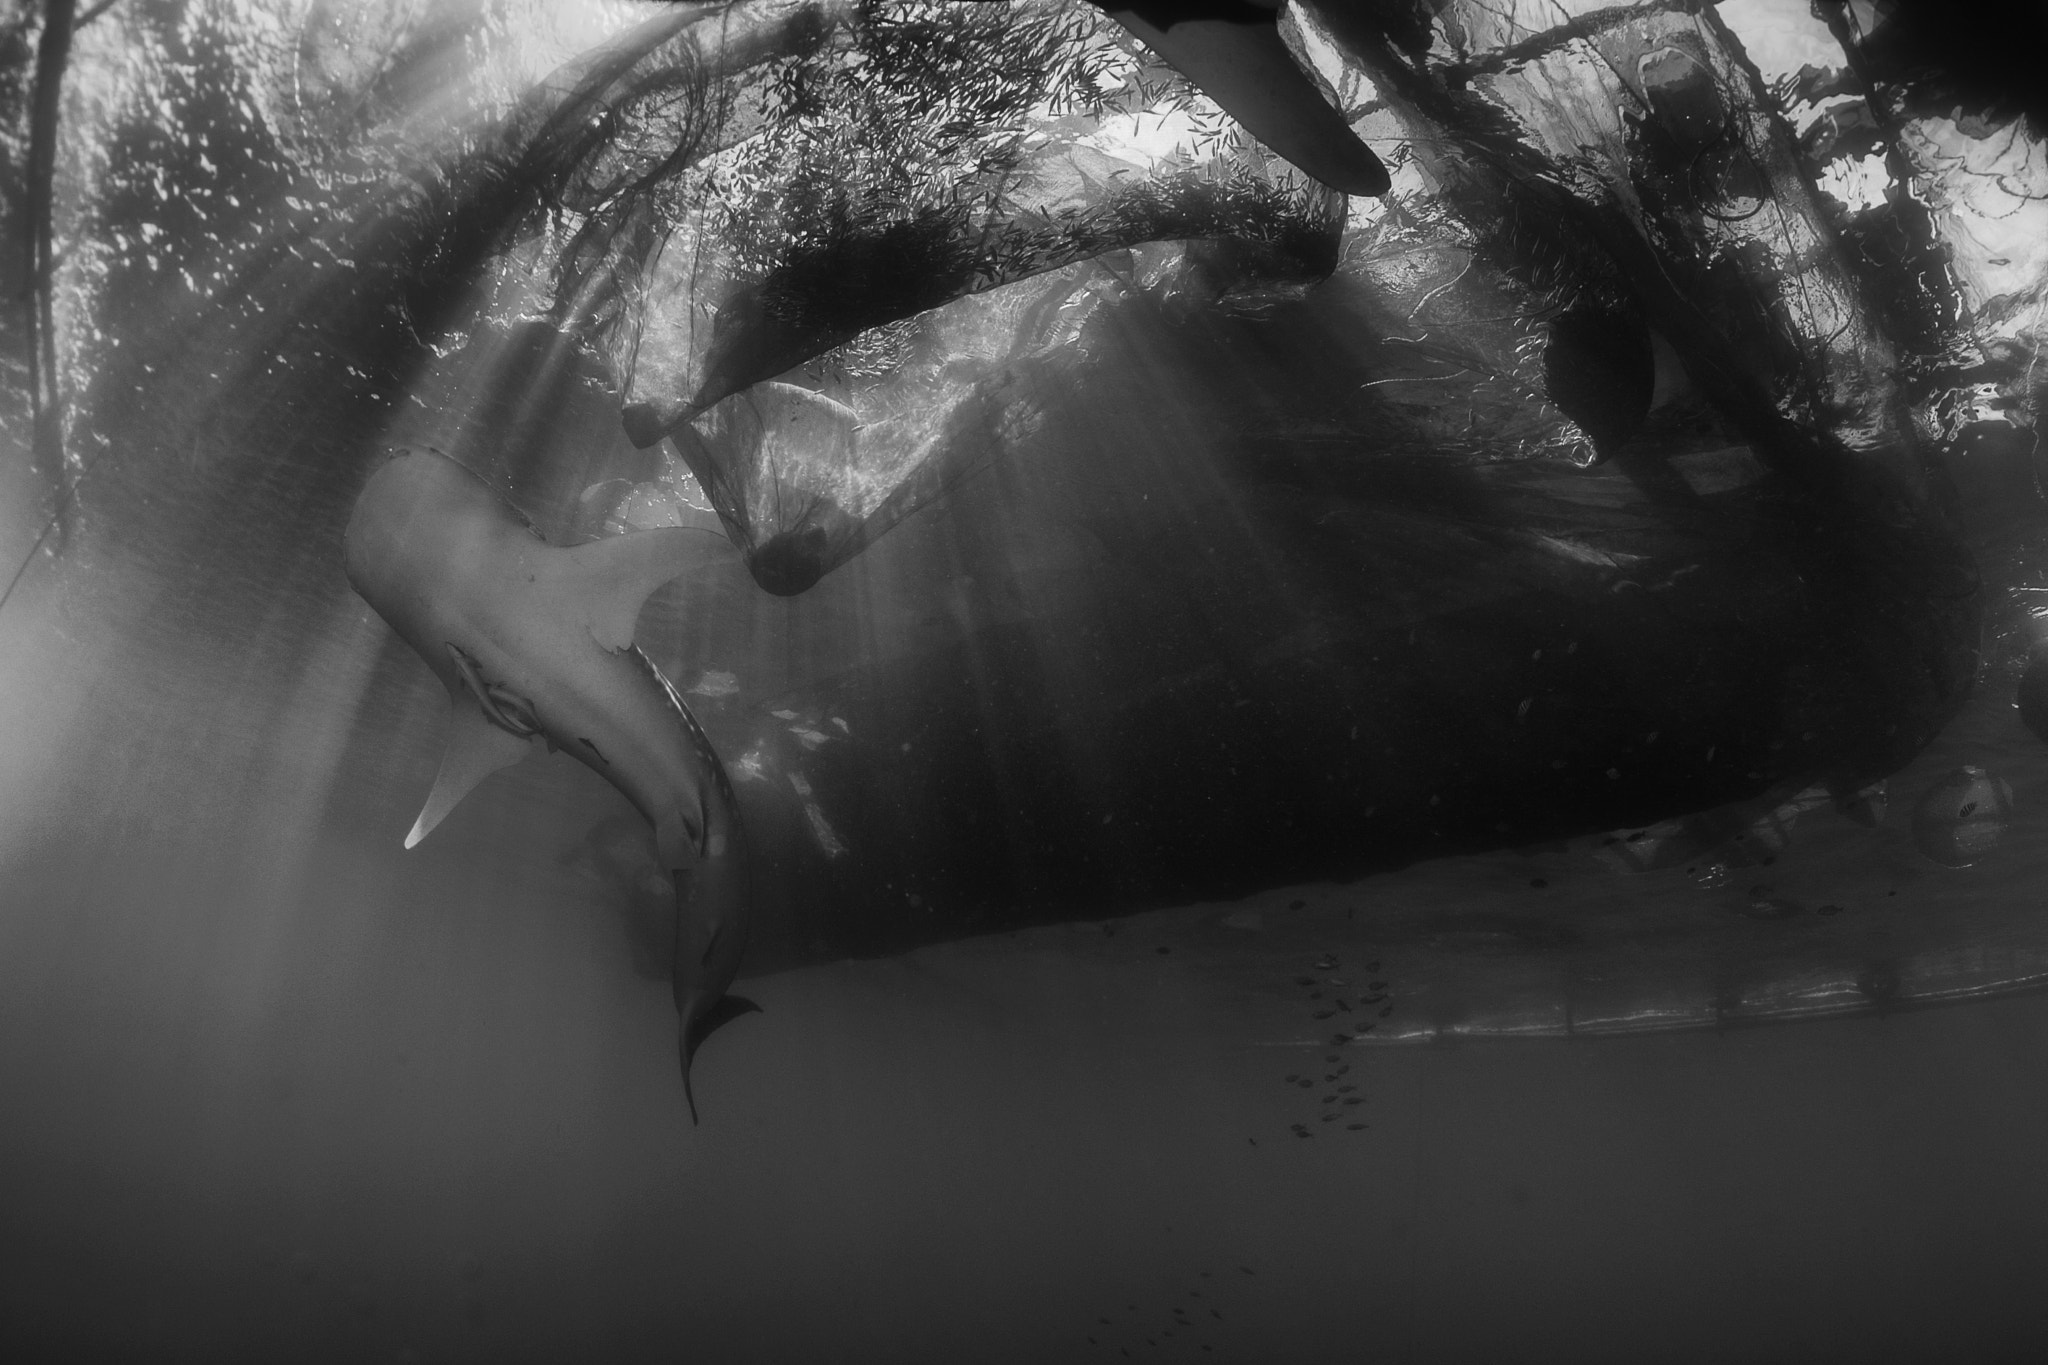 Photograph Underwater Rays by Andrea Izzotti on 500px